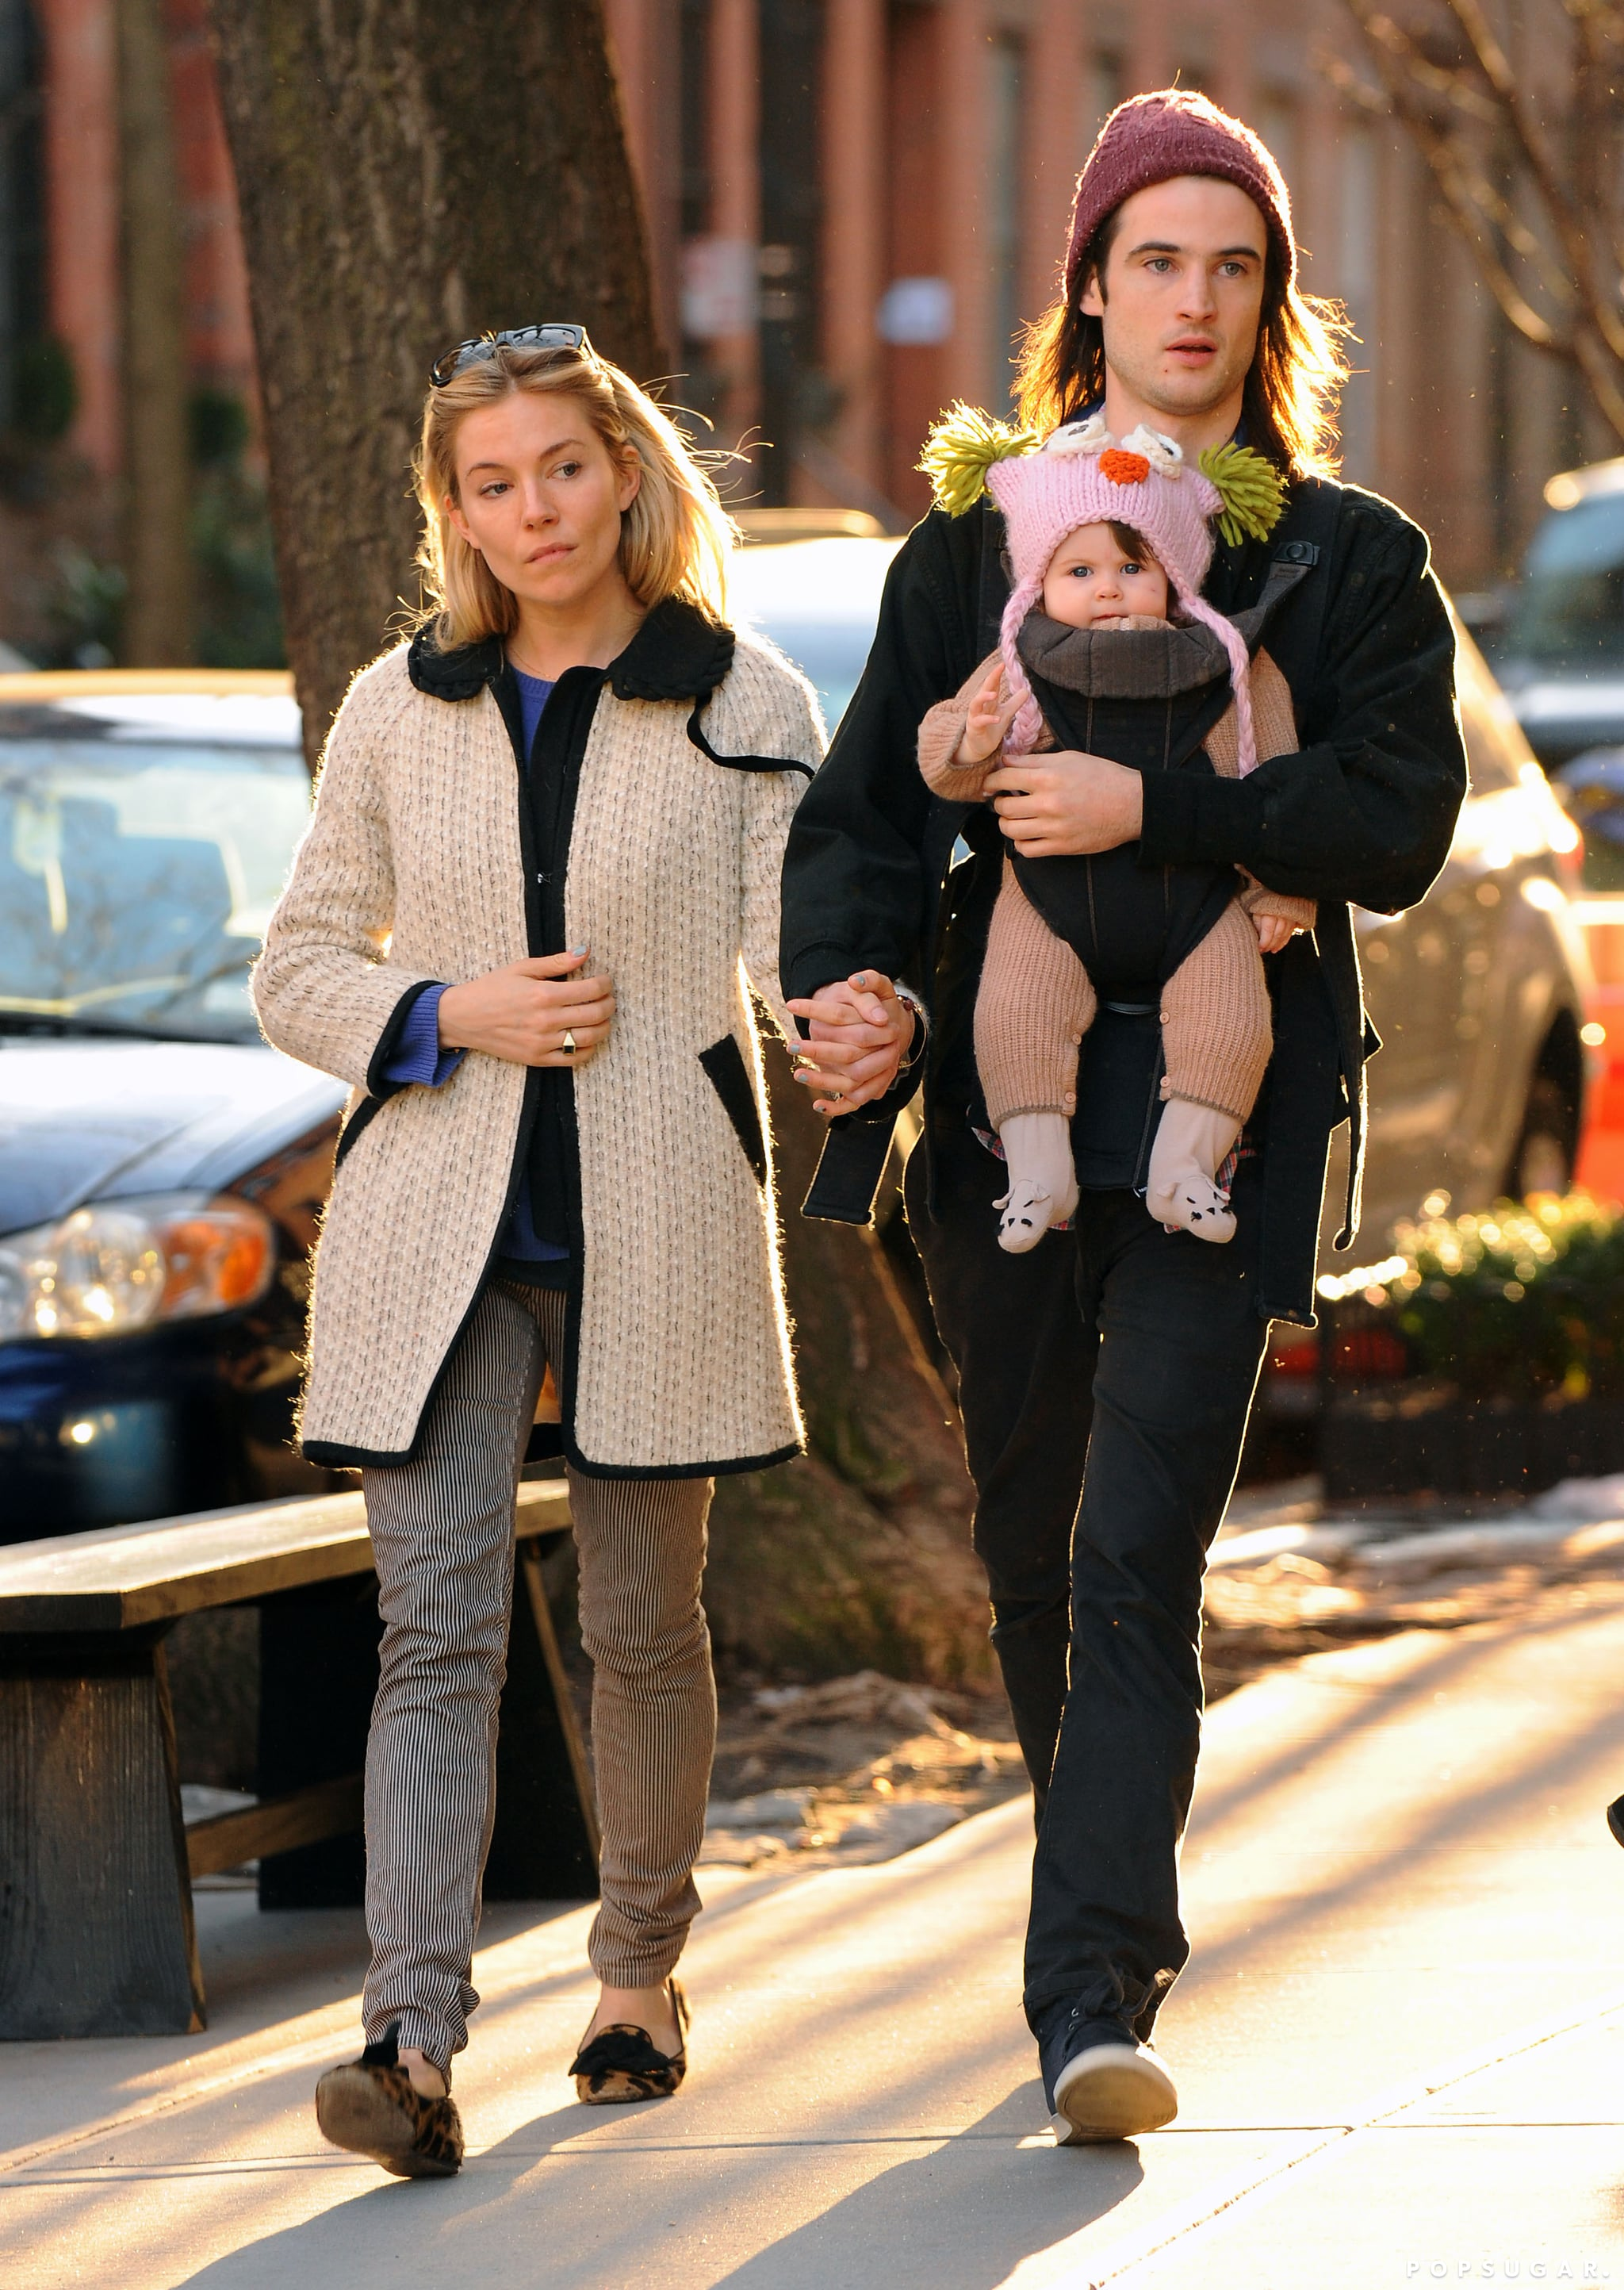 Sienna Miller and Tom Sturridge brought their baby daughter, Marlowe Sturridge, out for a walk in NYC.